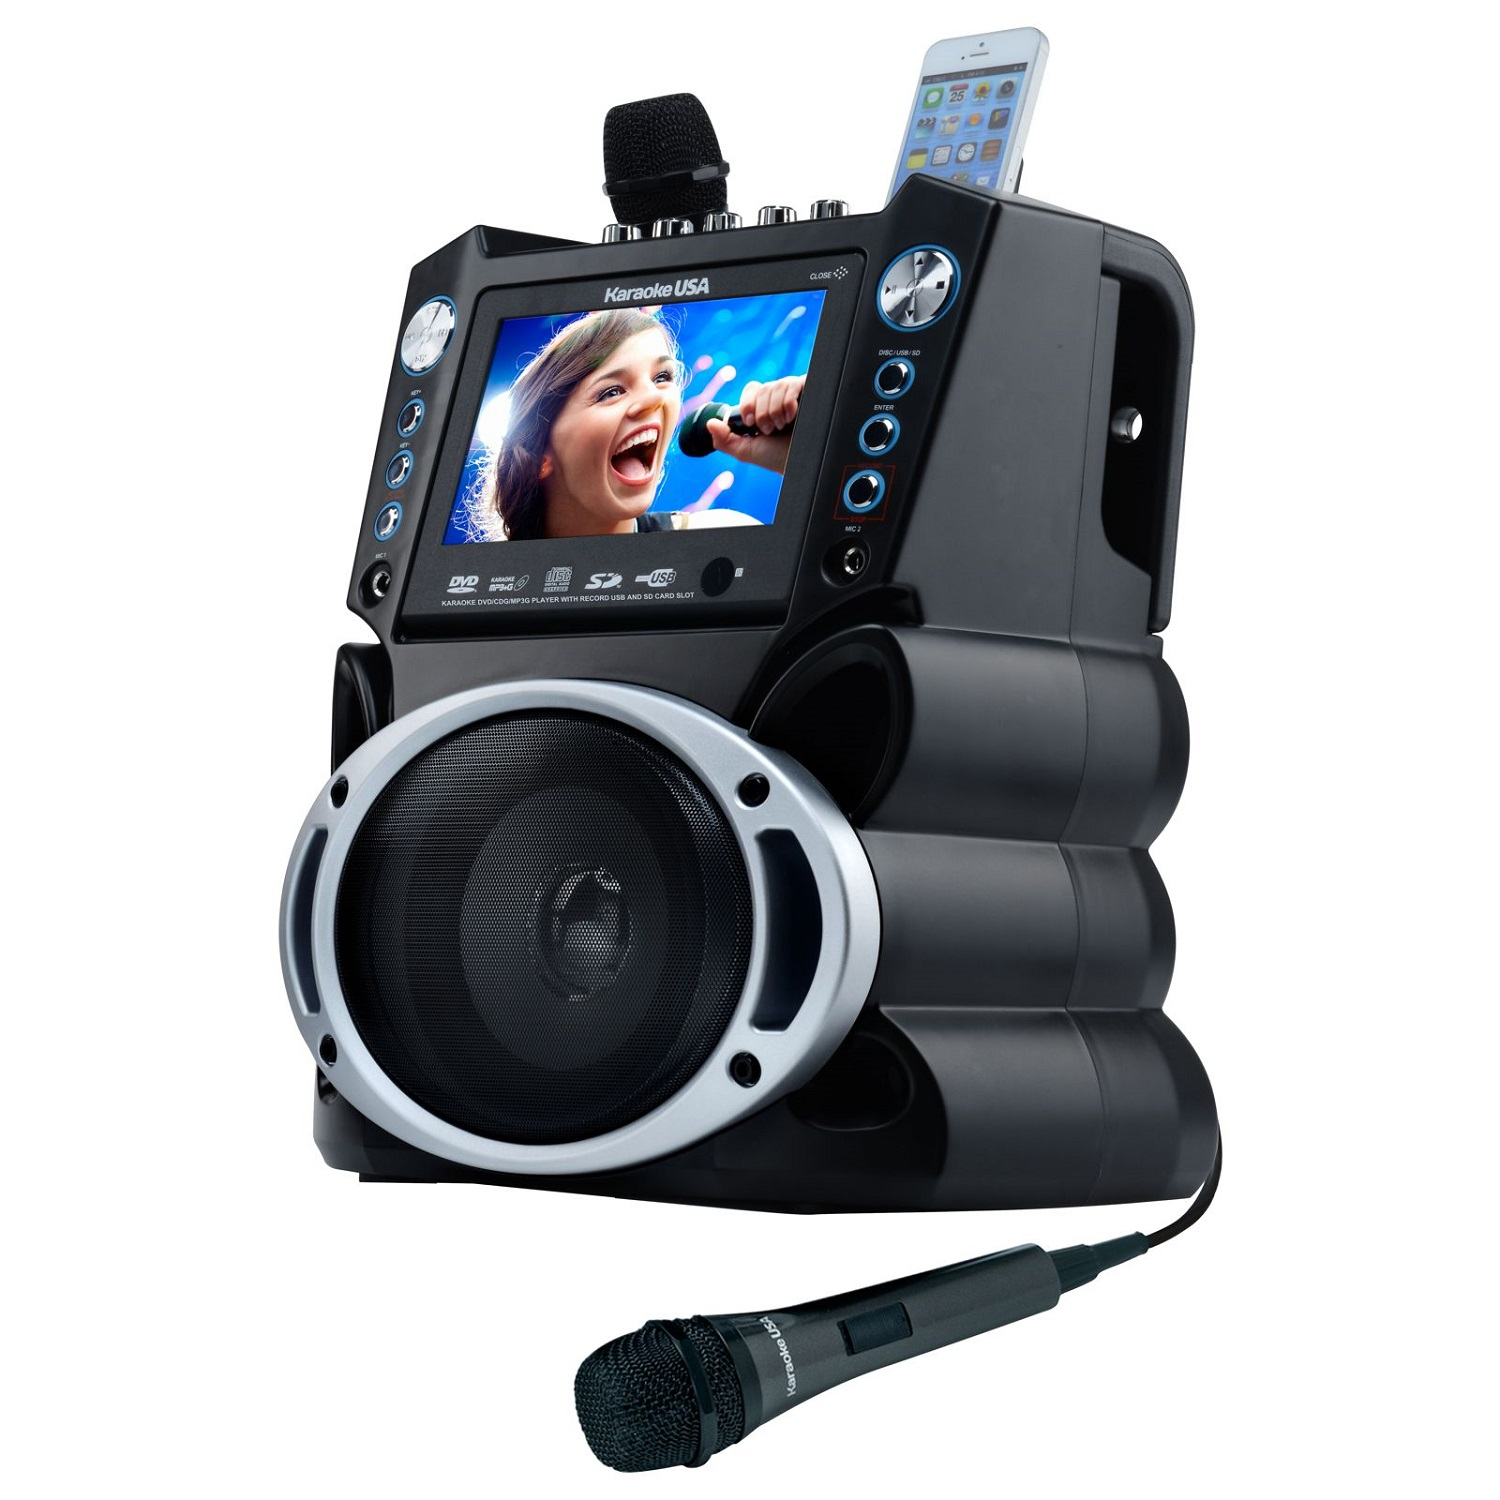 "Karaoke USA GF839 DVD/CDG/MP3G Karaoke Machine with 7"" TFT Color Screen and Record Function"